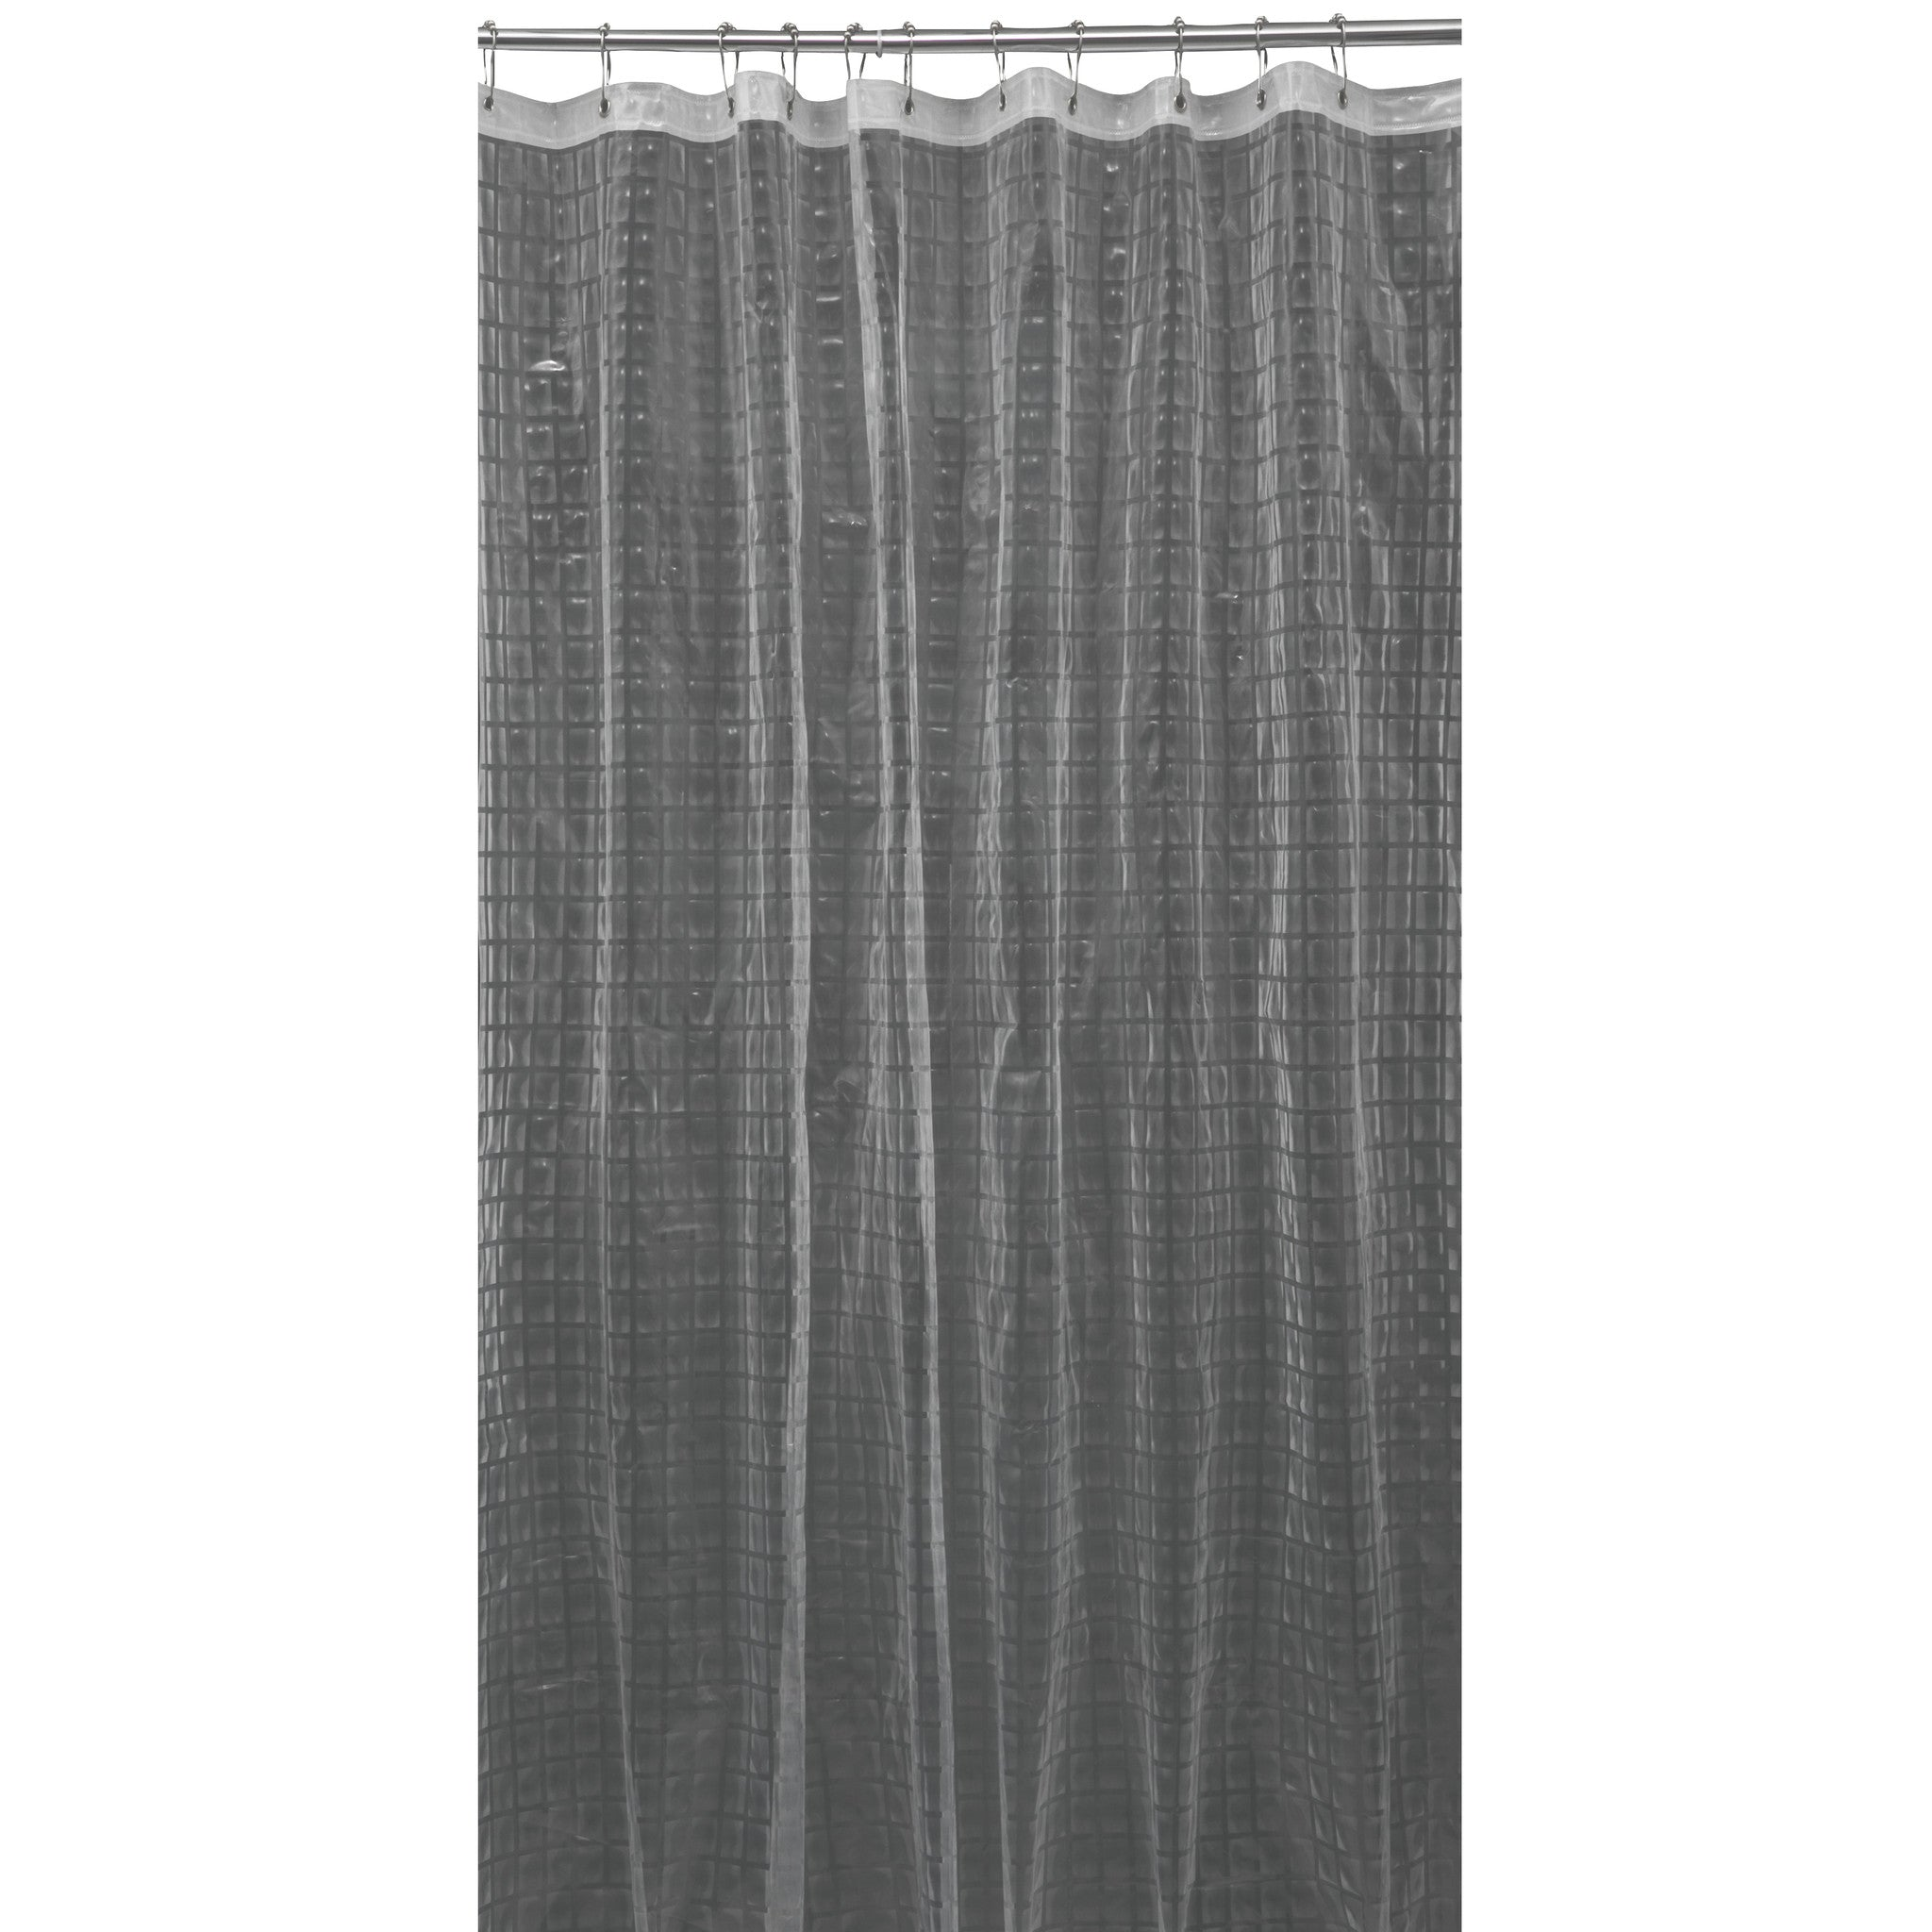 Bath Bliss 3D Octagon Design Shower Curtain In Grey